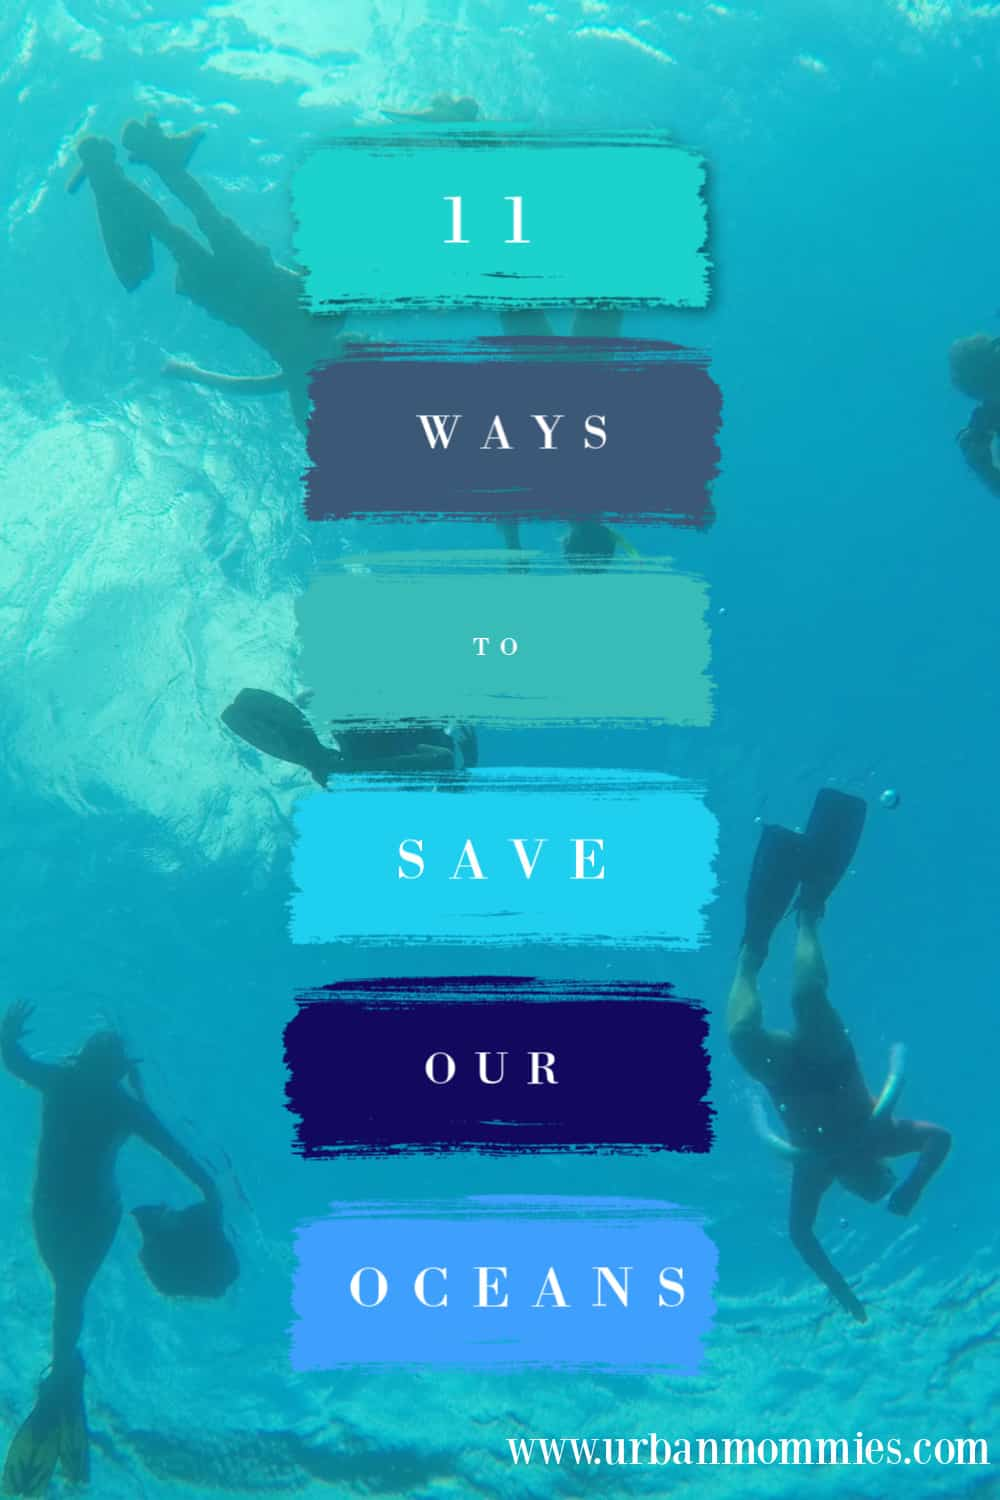 11 Ways to Help Save Our Oceans